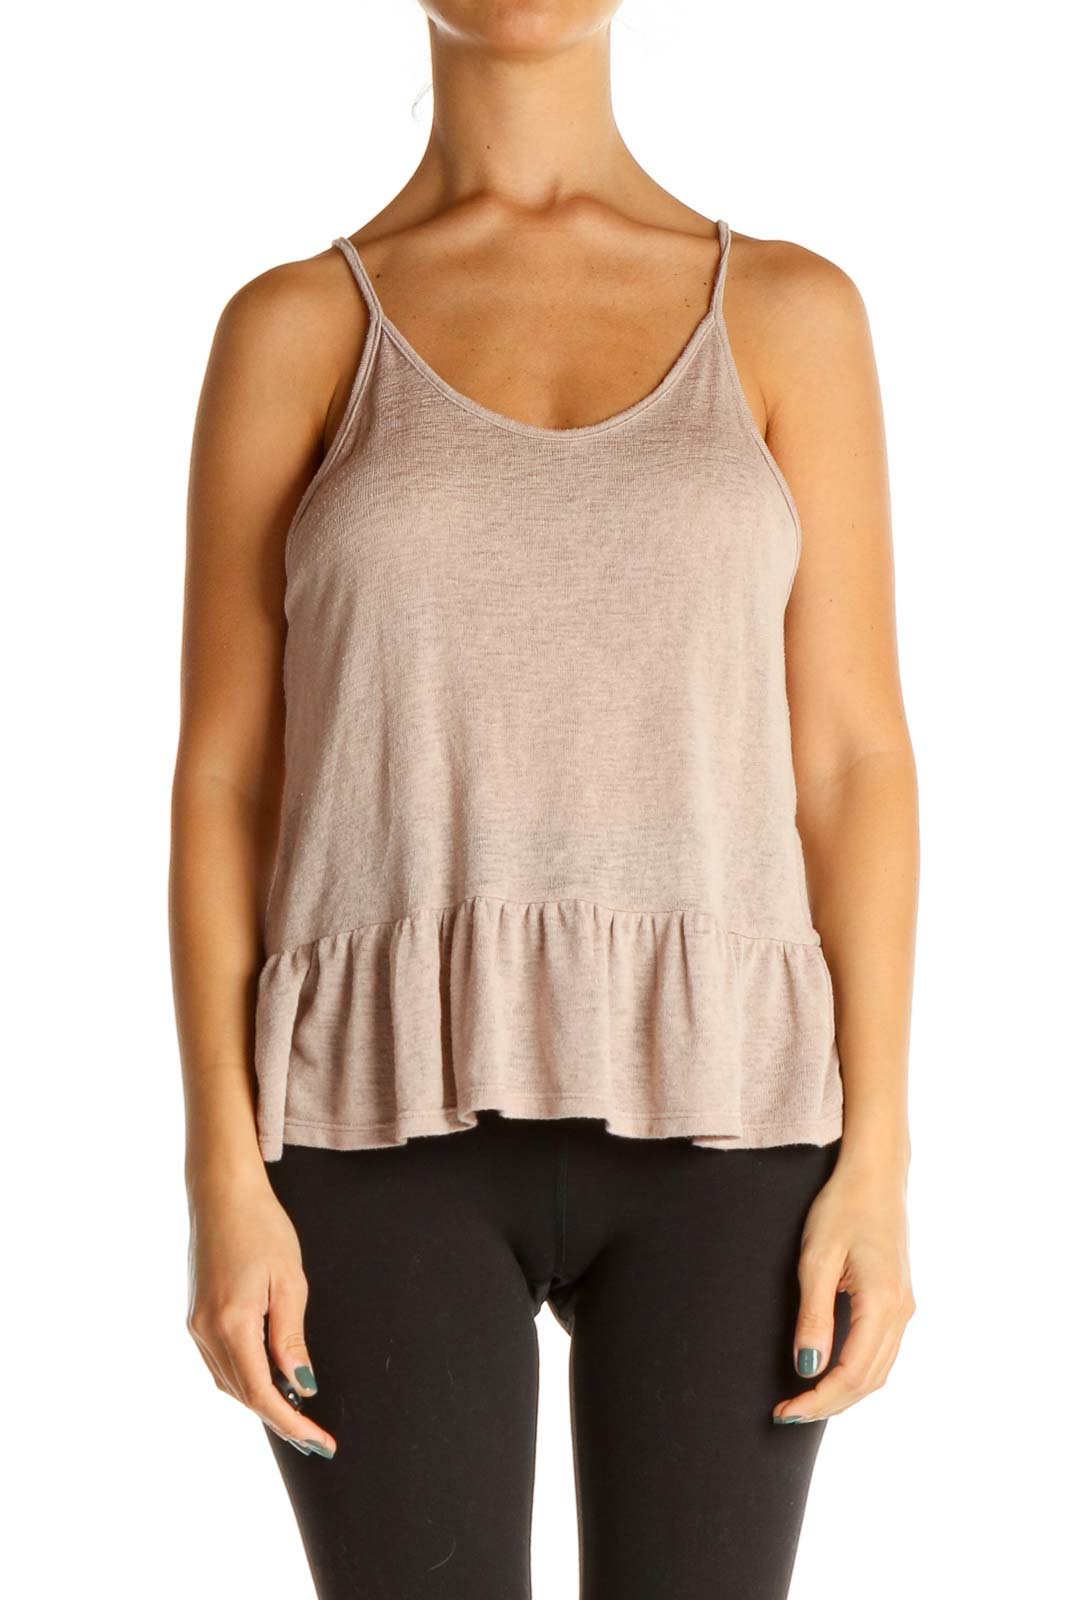 Pink Solid All Day Wear Top Front